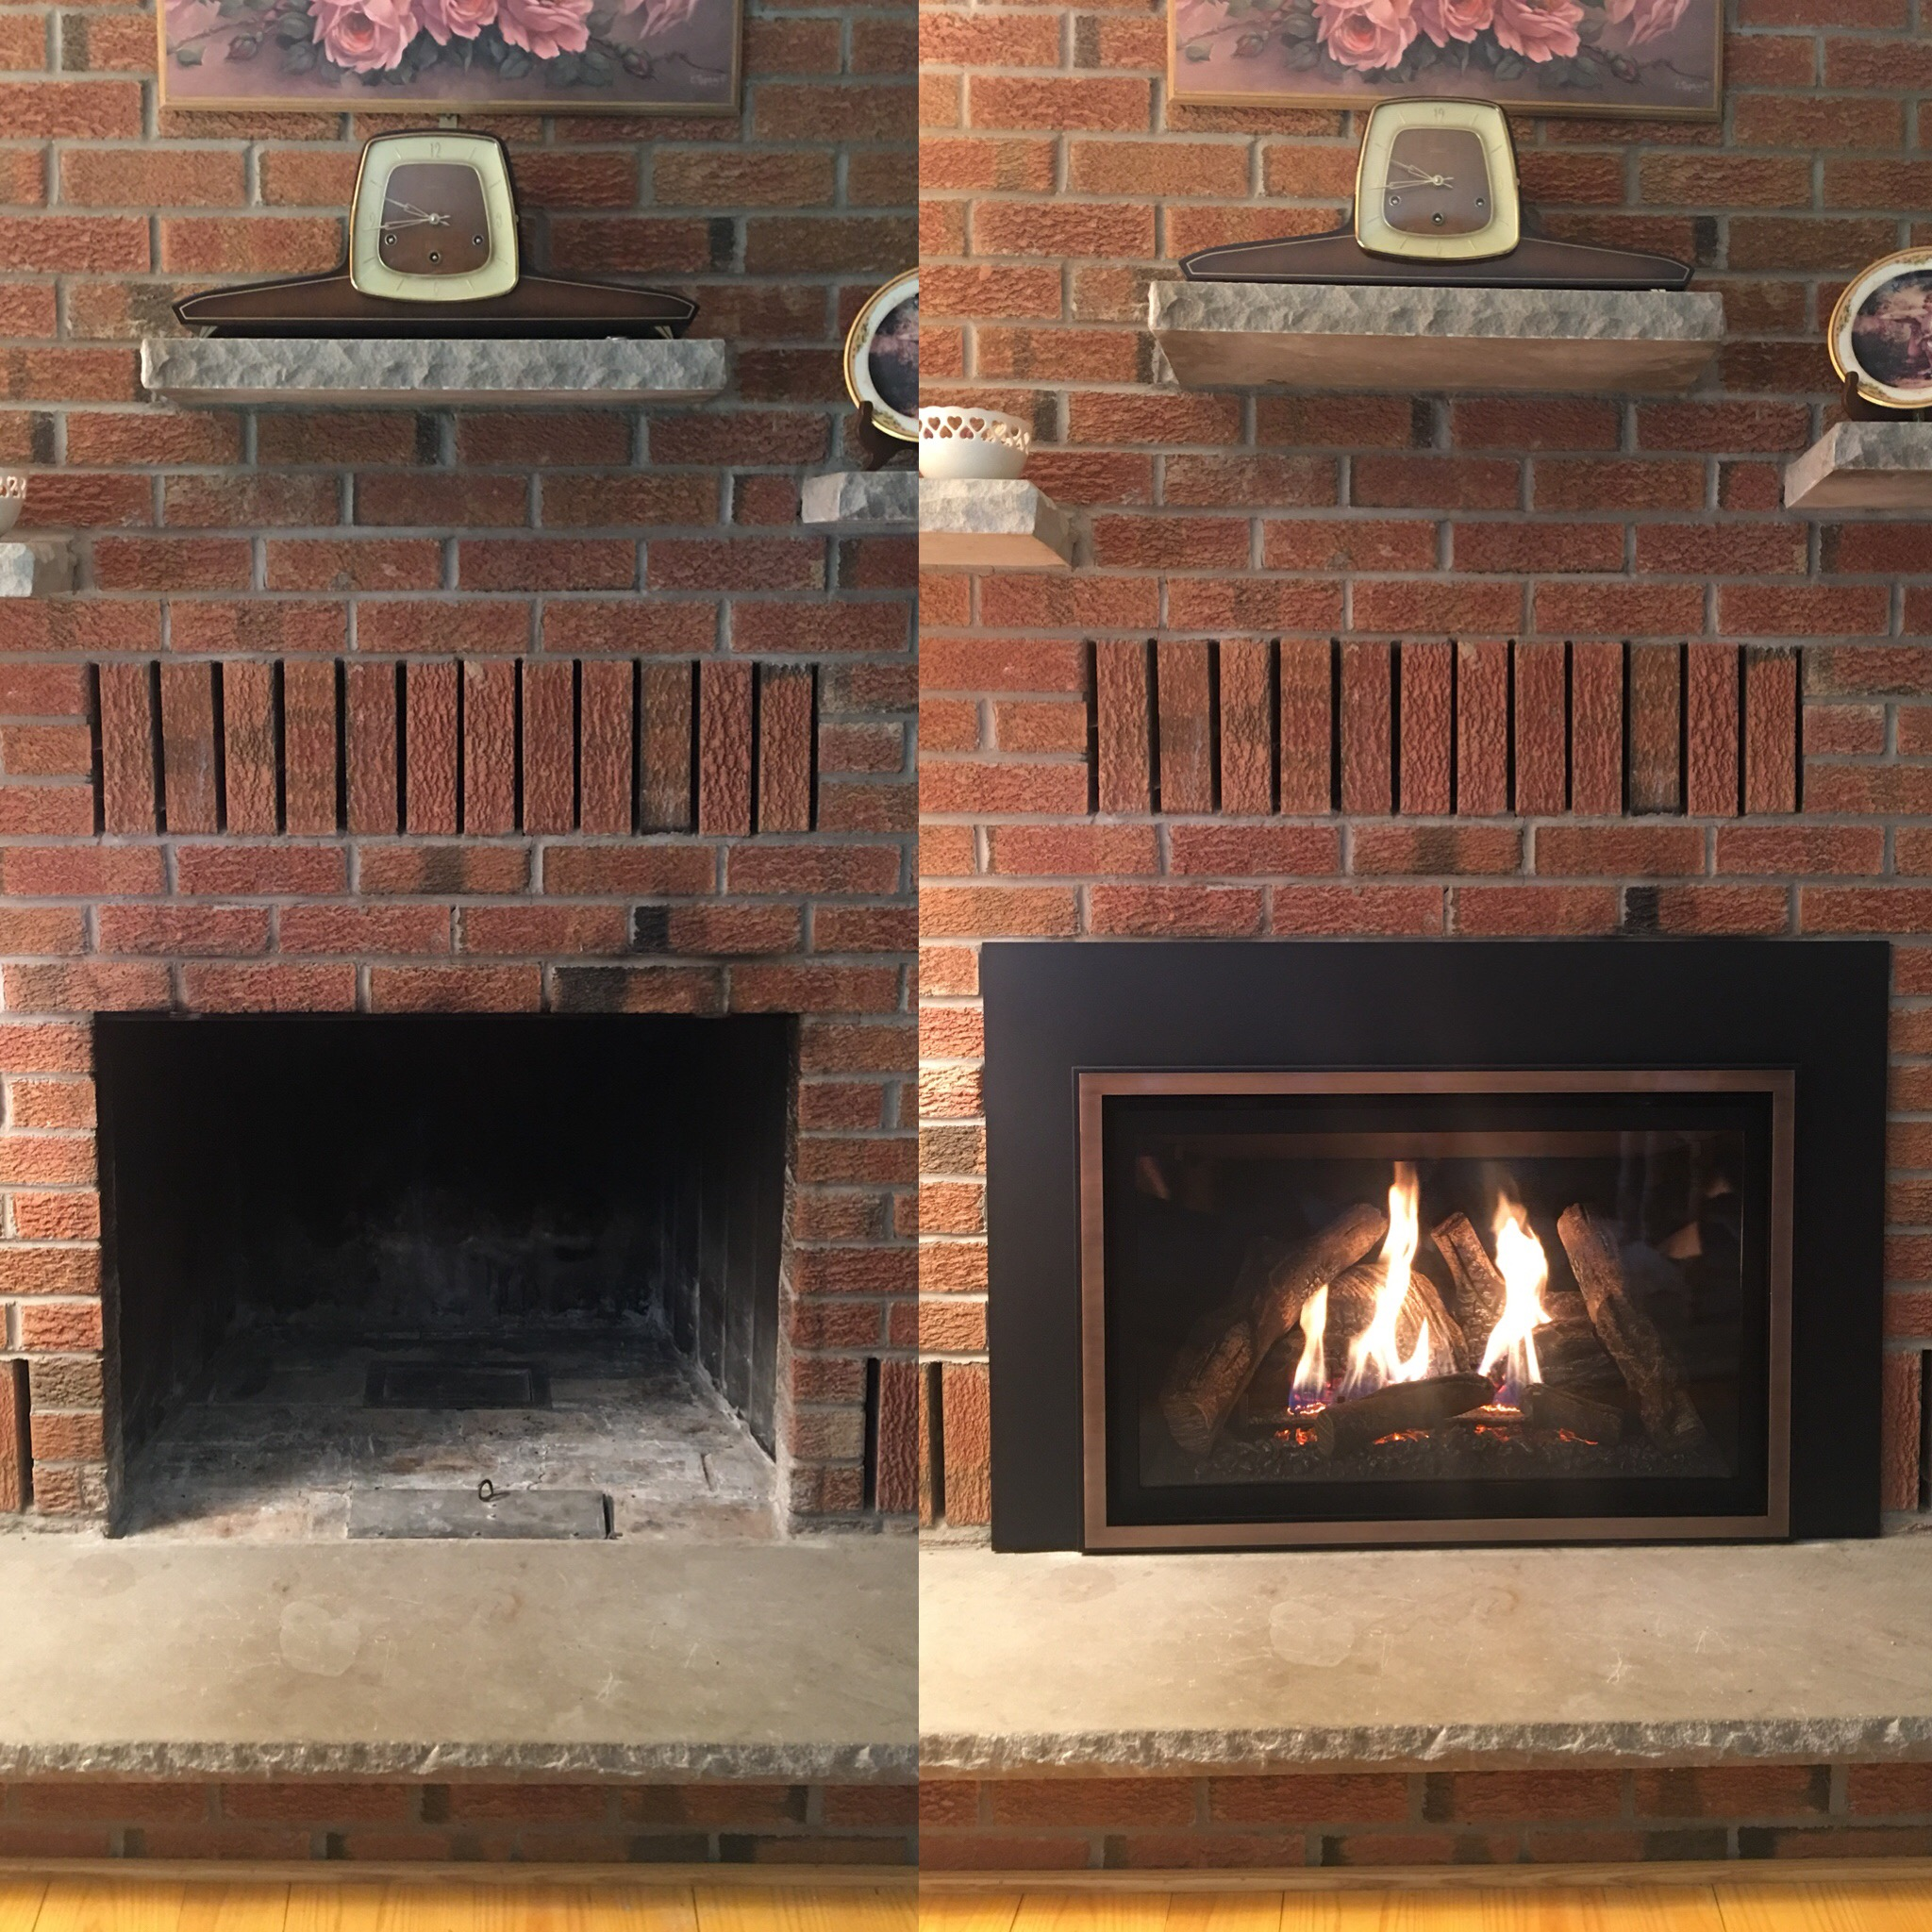 Image of a traditional chaska 34-log gas insert by Kozy Heat and the preexisting masonry fireplace as the before.